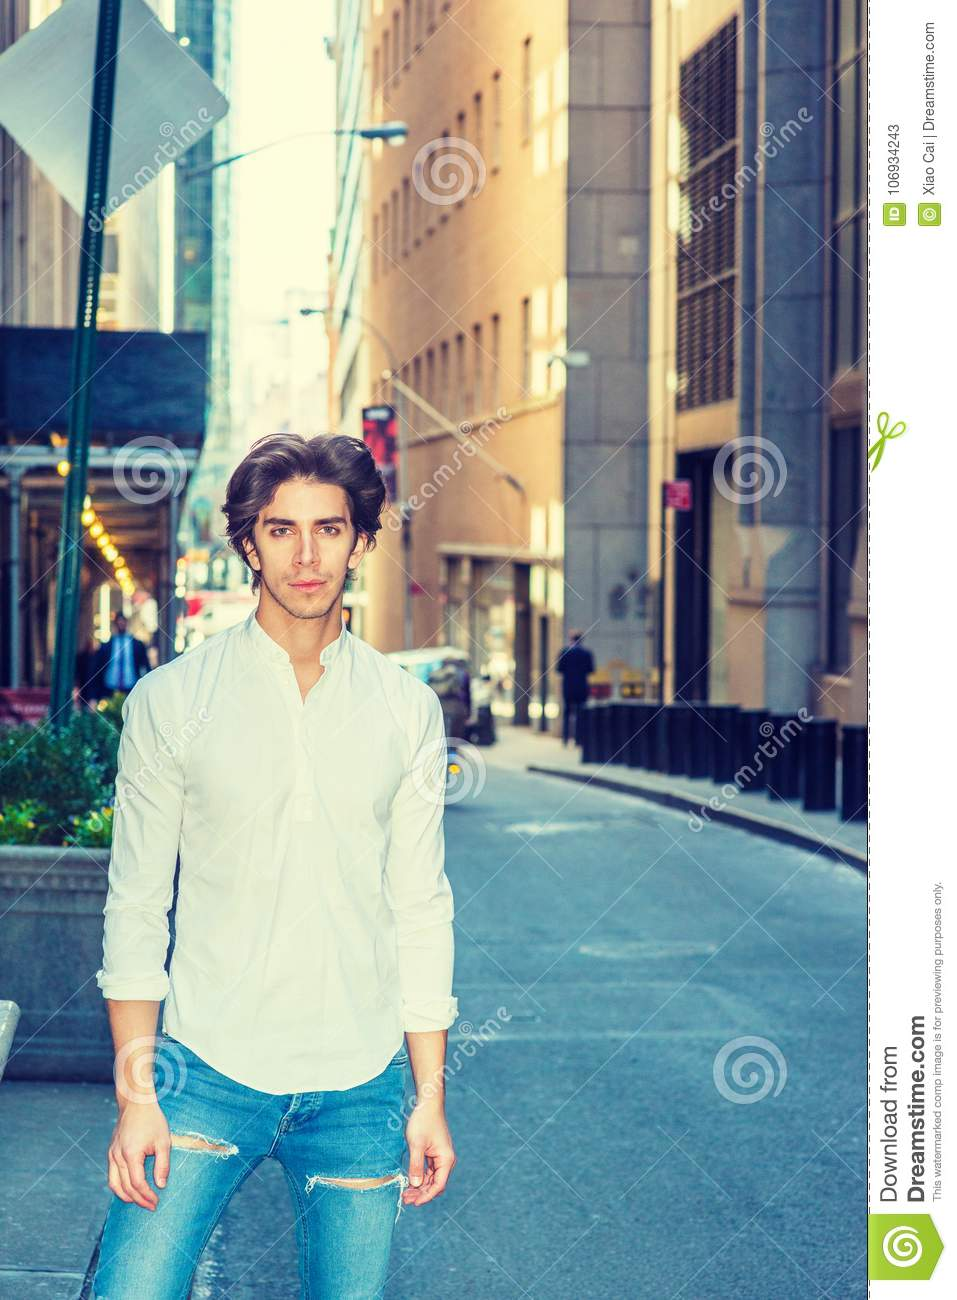 3adc2b00 City life. stock image. Image of male, shirt, blue, jeans - 106934243